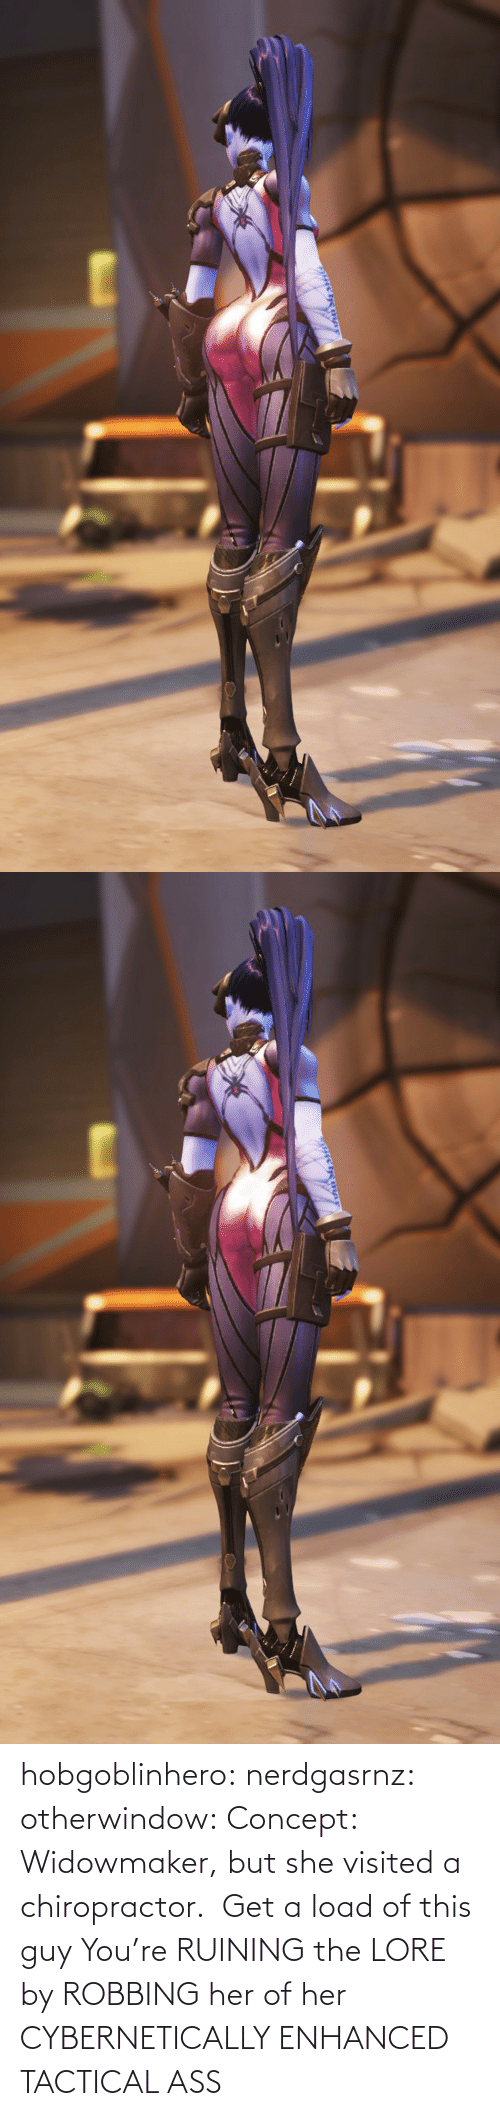 But She: hobgoblinhero: nerdgasrnz:  otherwindow: Concept: Widowmaker, but she visited a chiropractor.  Get a load of this guy  You're RUINING the LORE by ROBBING her of her CYBERNETICALLY ENHANCED TACTICAL ASS